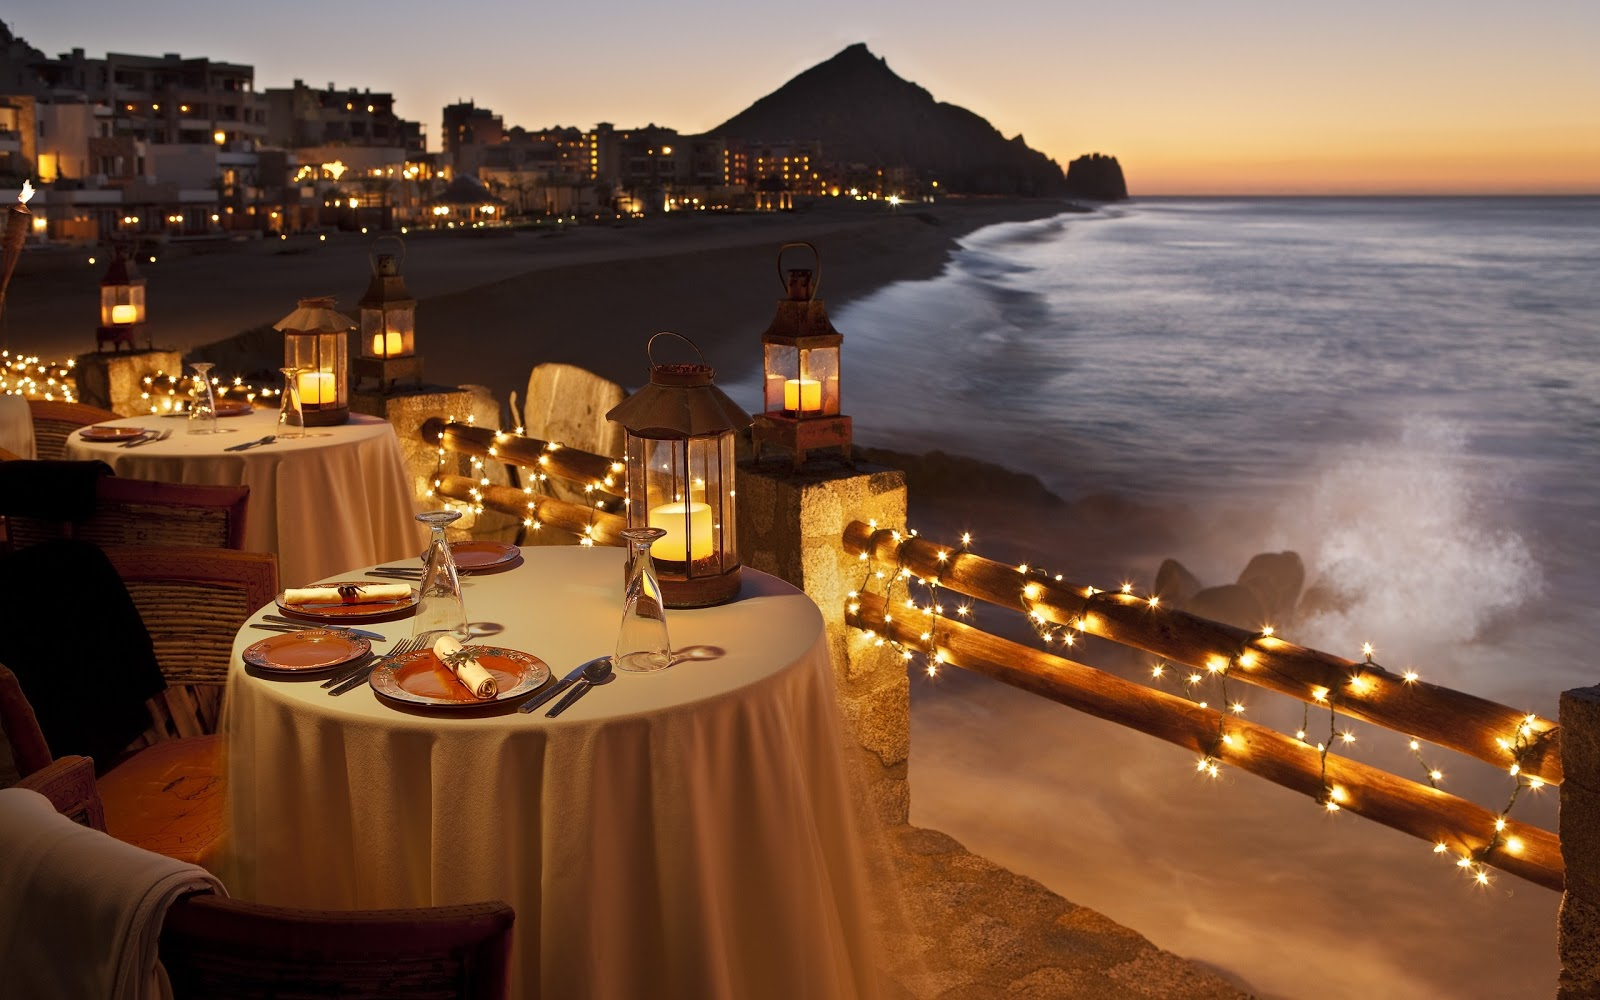 10 beautiful romantic dinner wallpapers tapandaola111 for Romantic restaurants in california